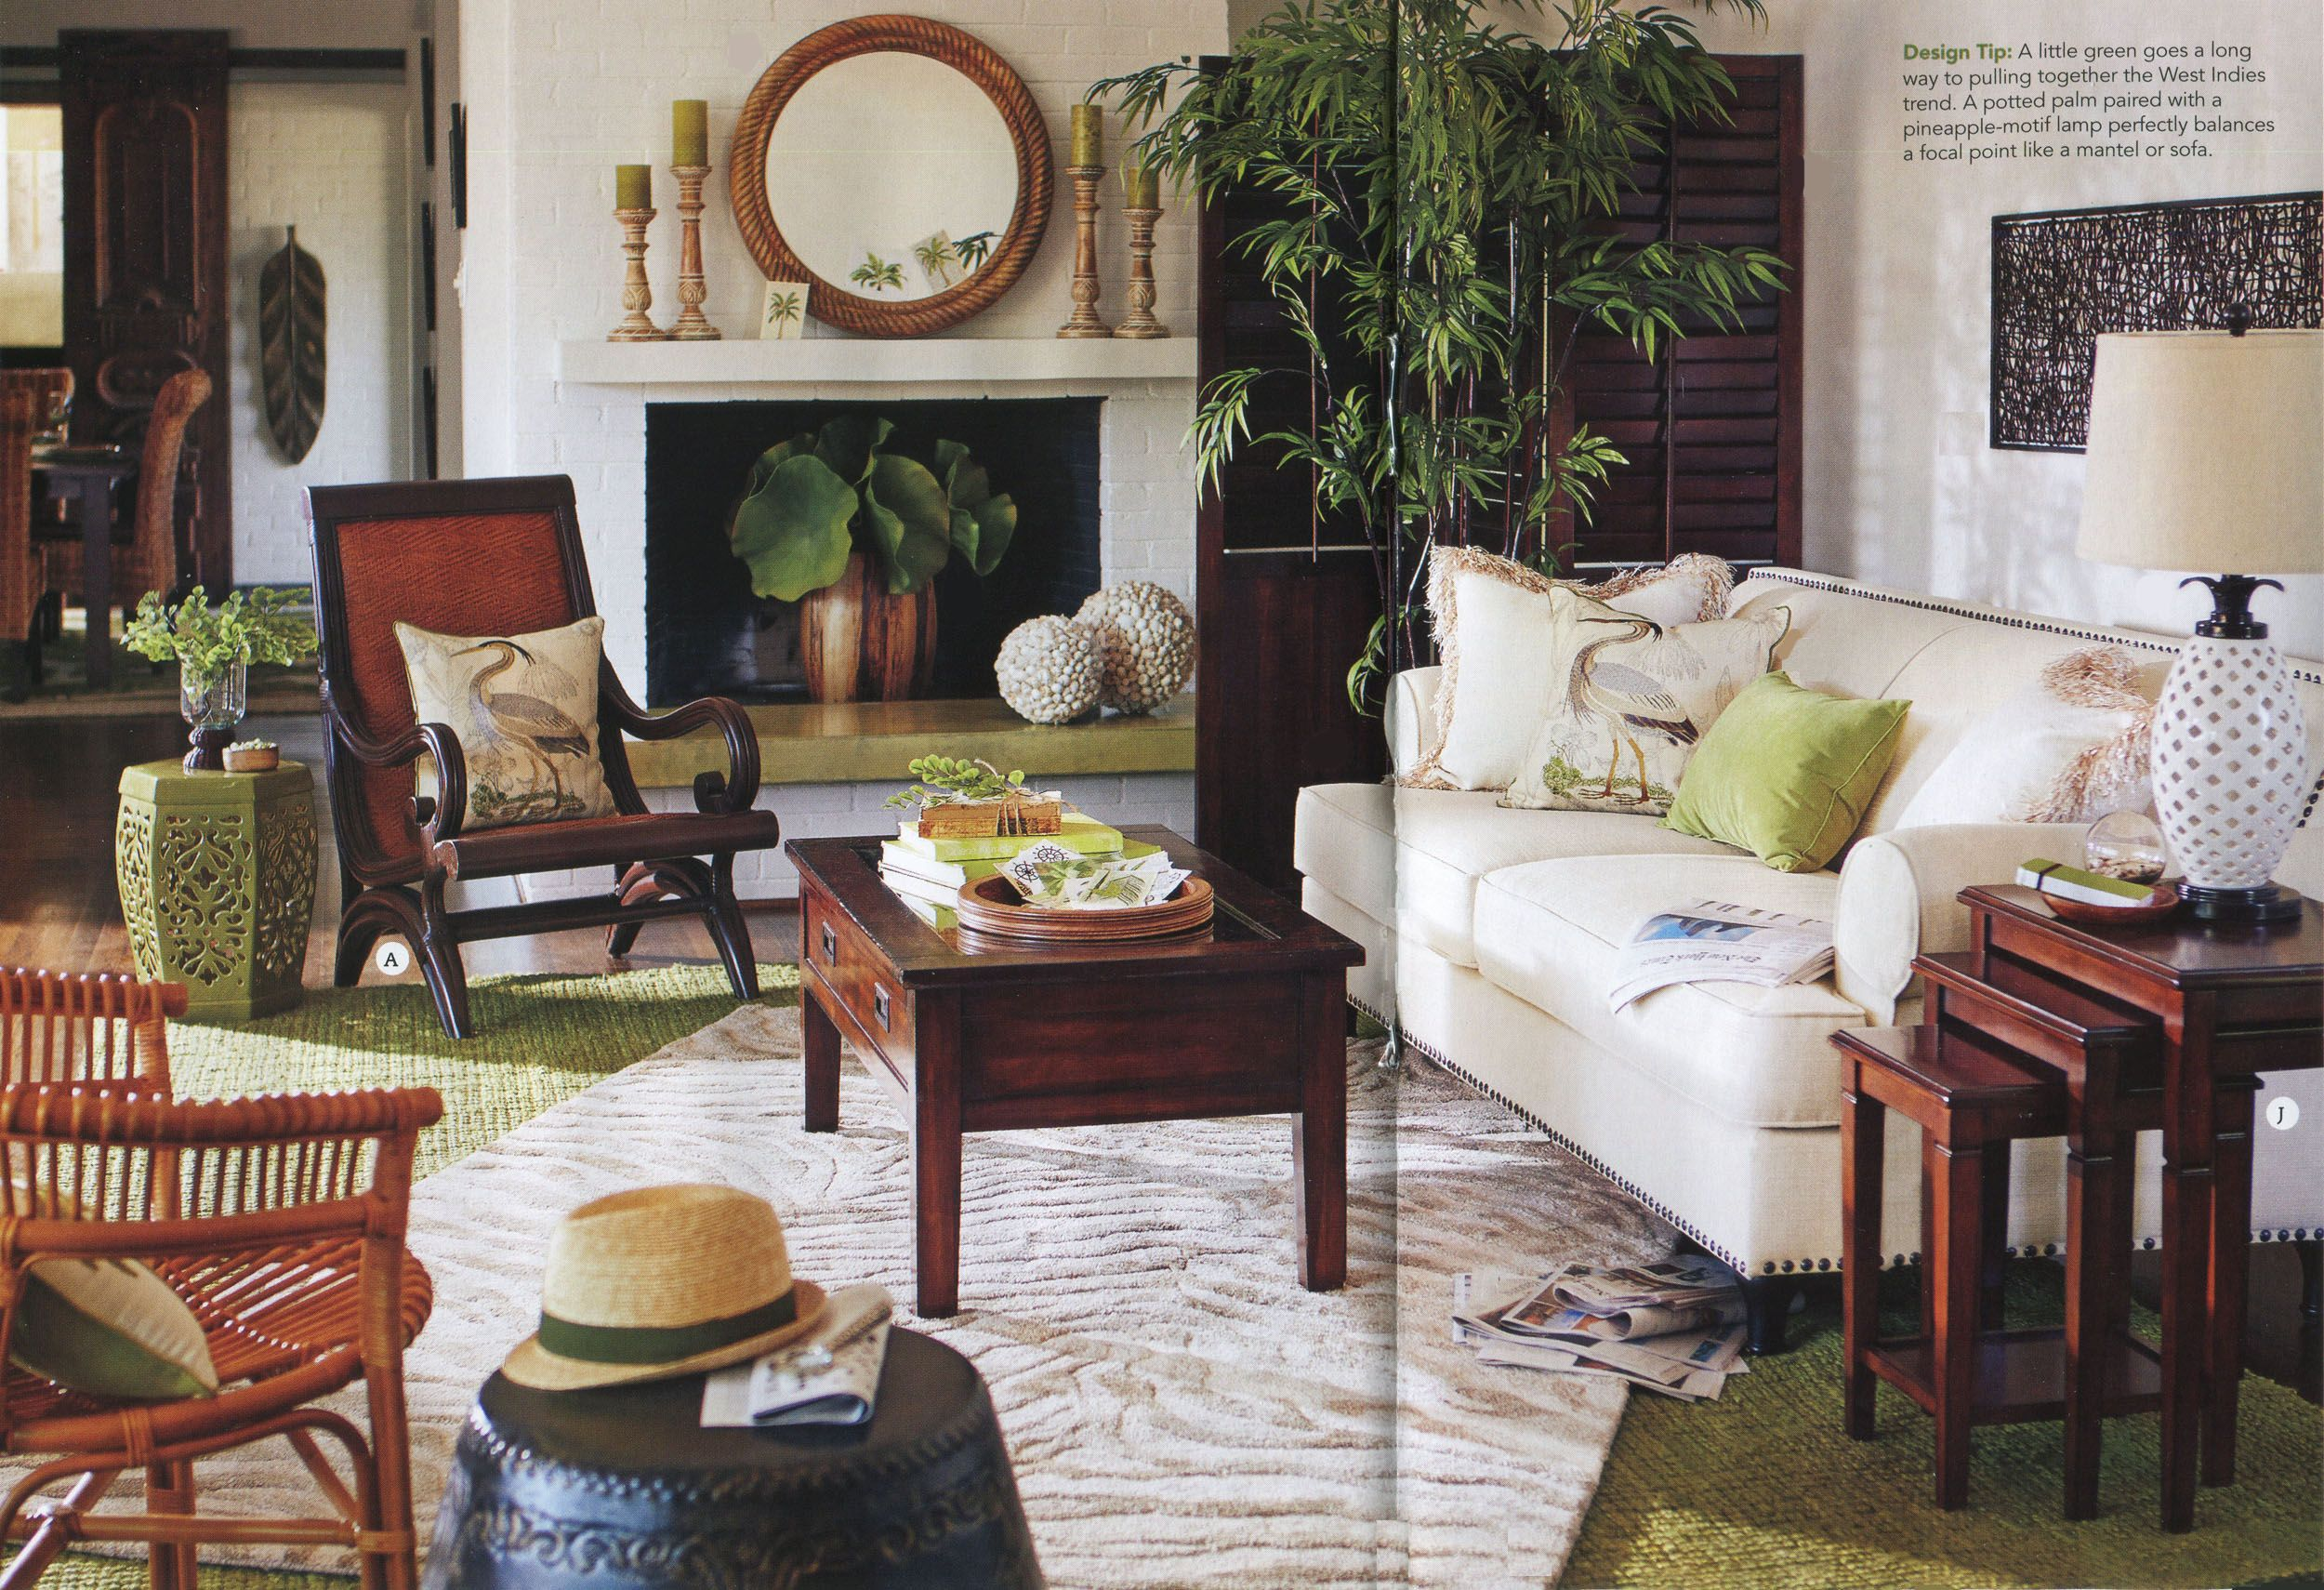 pier 1 living room rugs%0A Pier   Living Room  Pier    the best friend of the British Colonial design